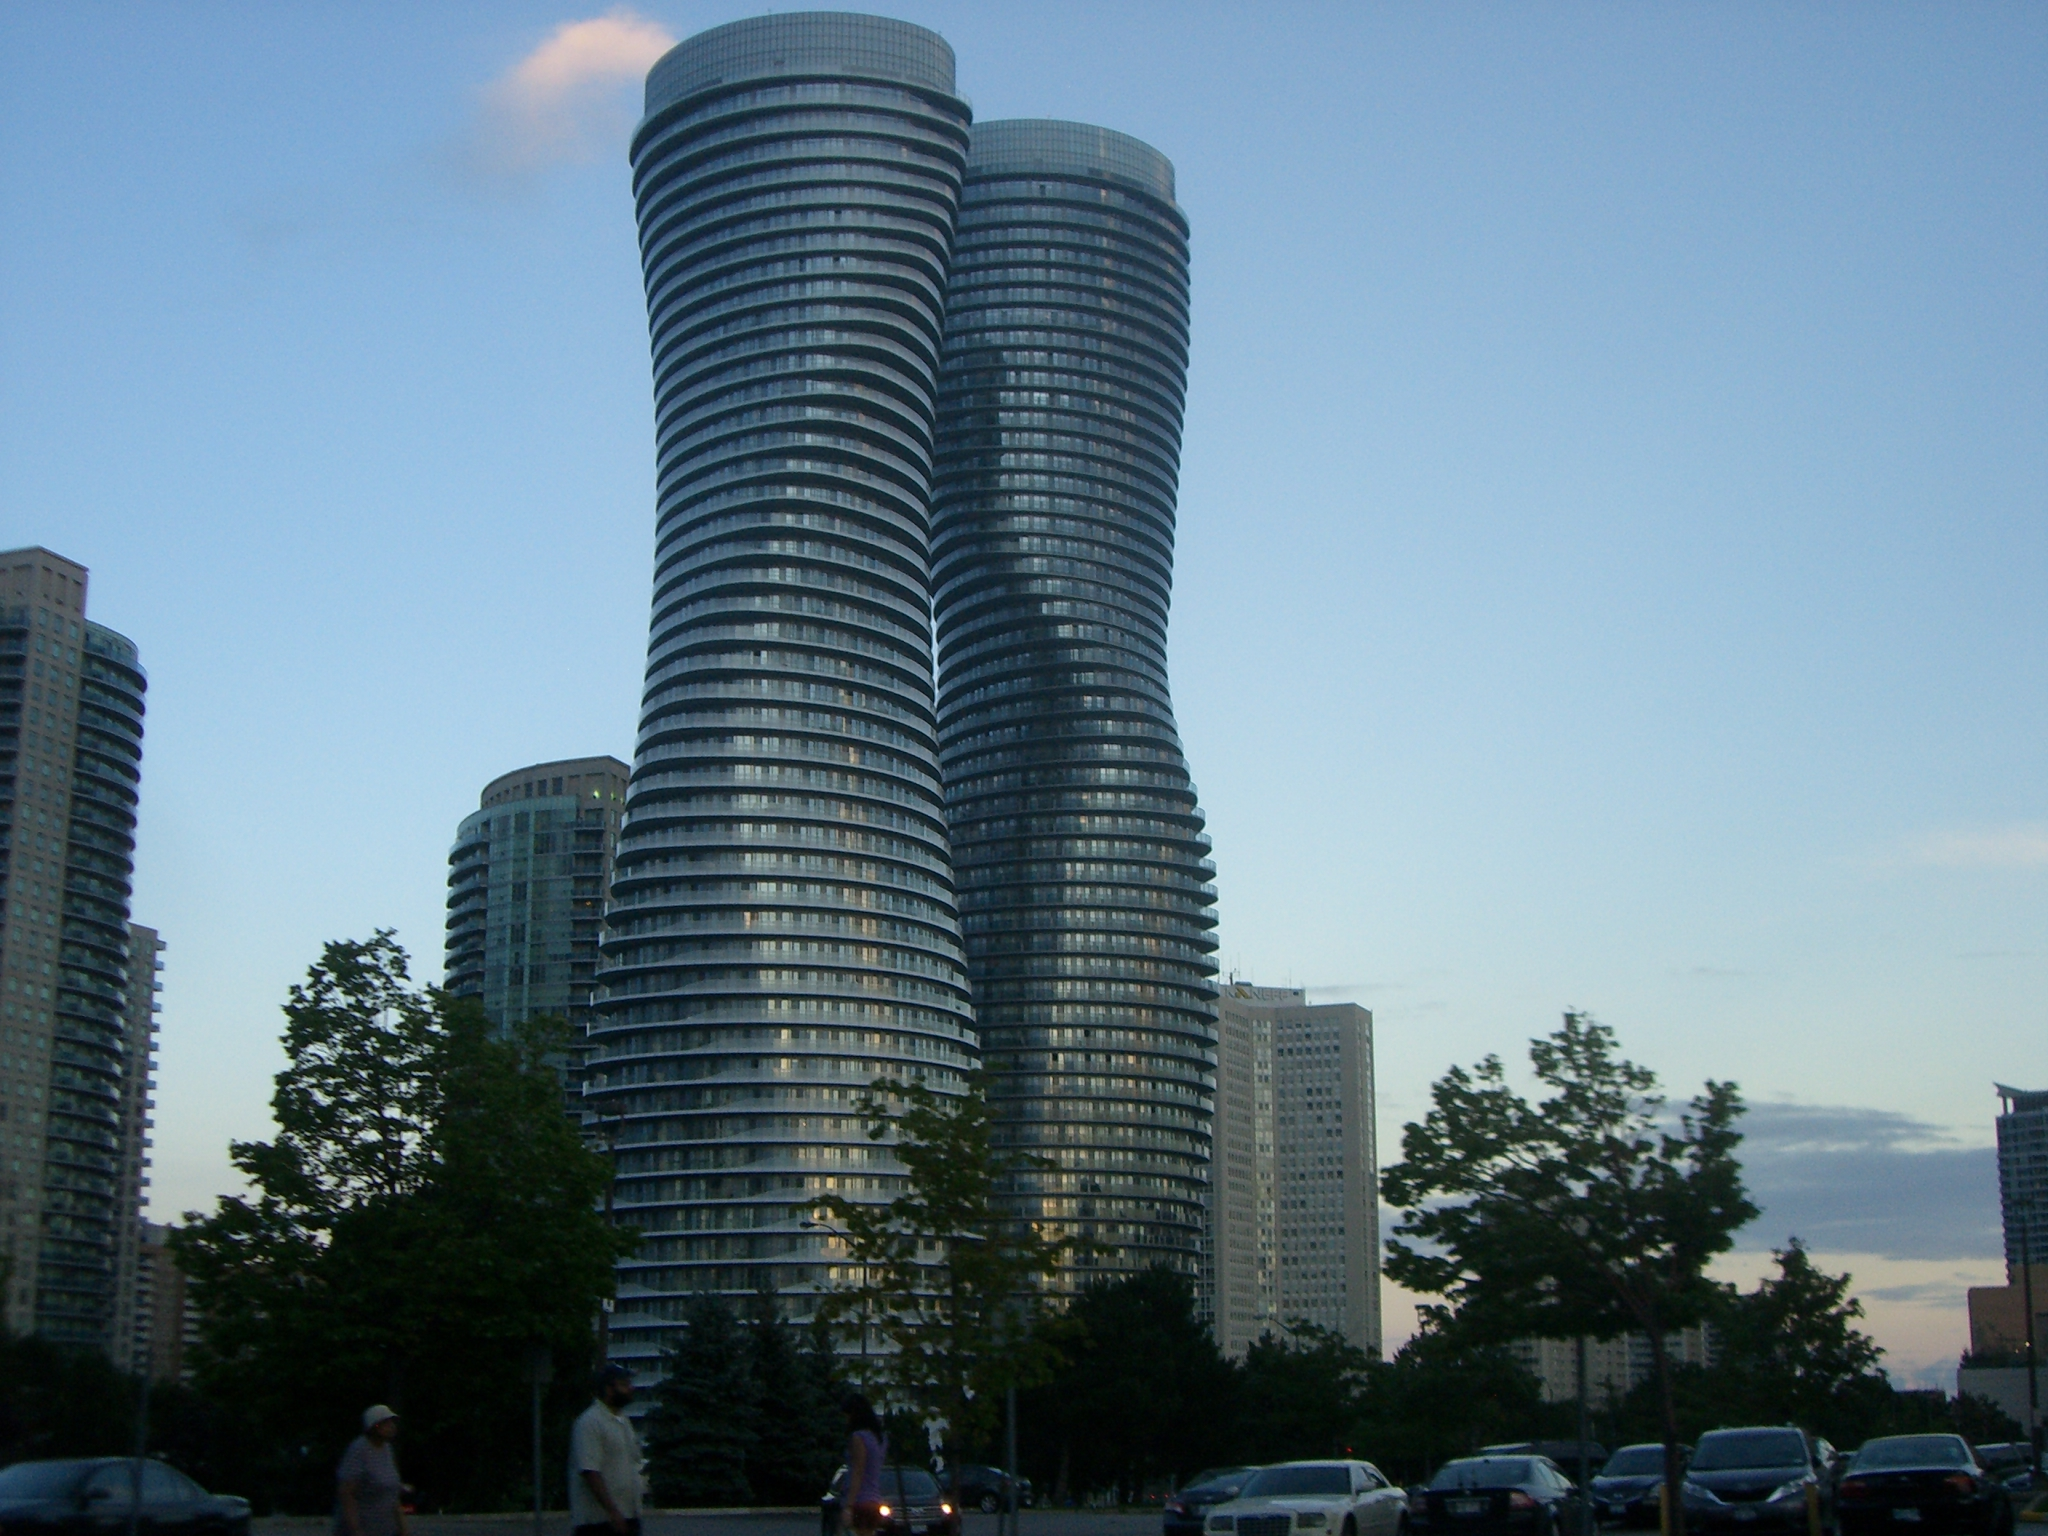 File absolute world towers 02 jpg wikimedia commons for Absolute towers